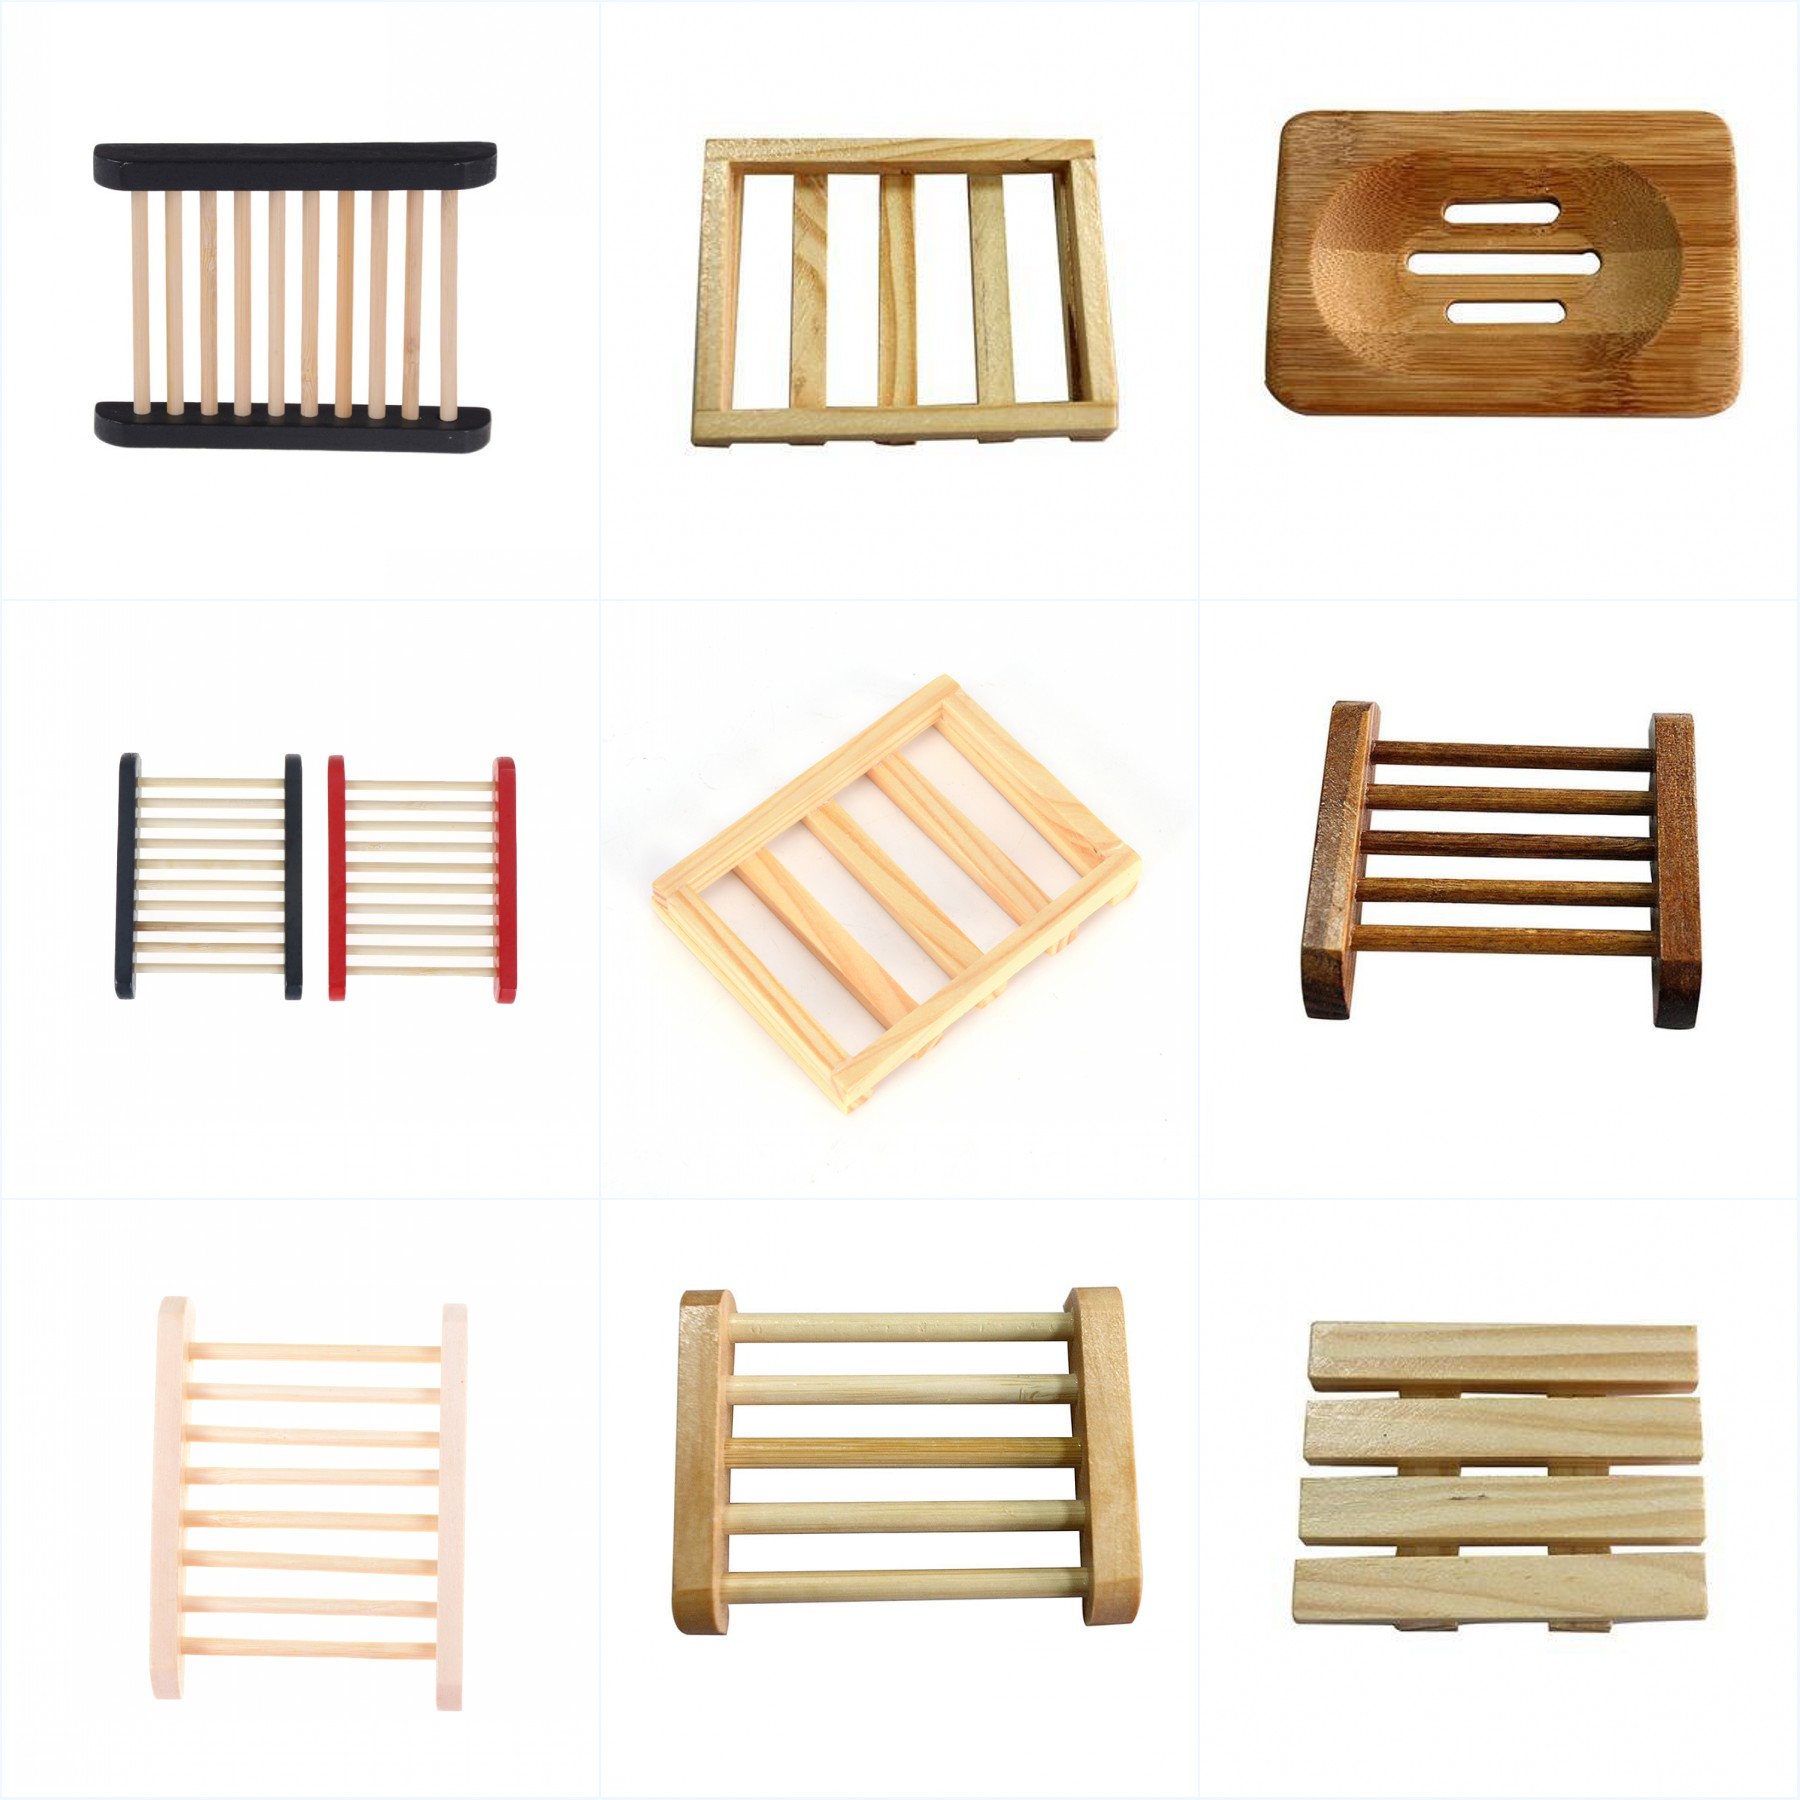 Natural Carbide Wood Soap Dish Shower Plate Bathroom Soap Holder Wooden Soap Container Travel Wood Soap Box